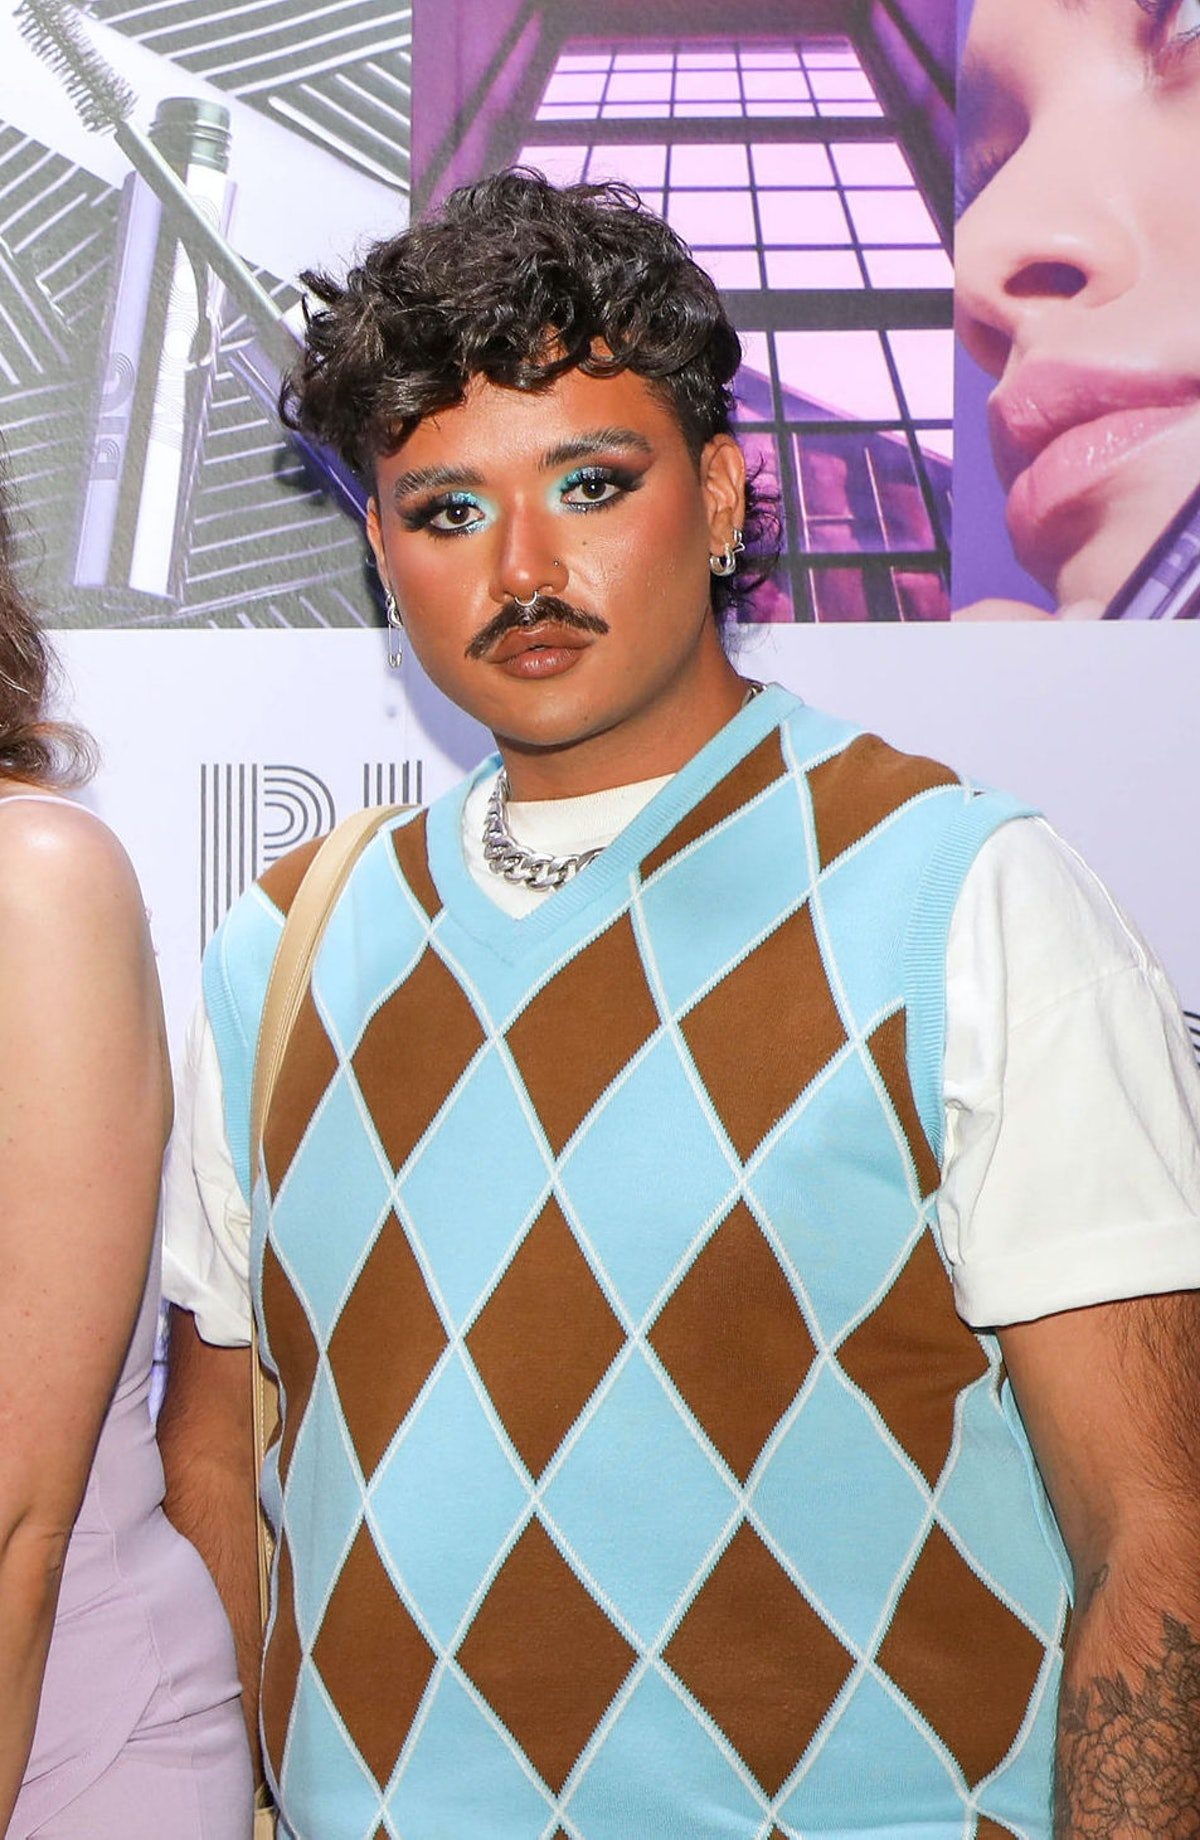 Makeup artist and influencer Michael Brooks attends a launch event for e.l.f.'s Big Mood Mascara